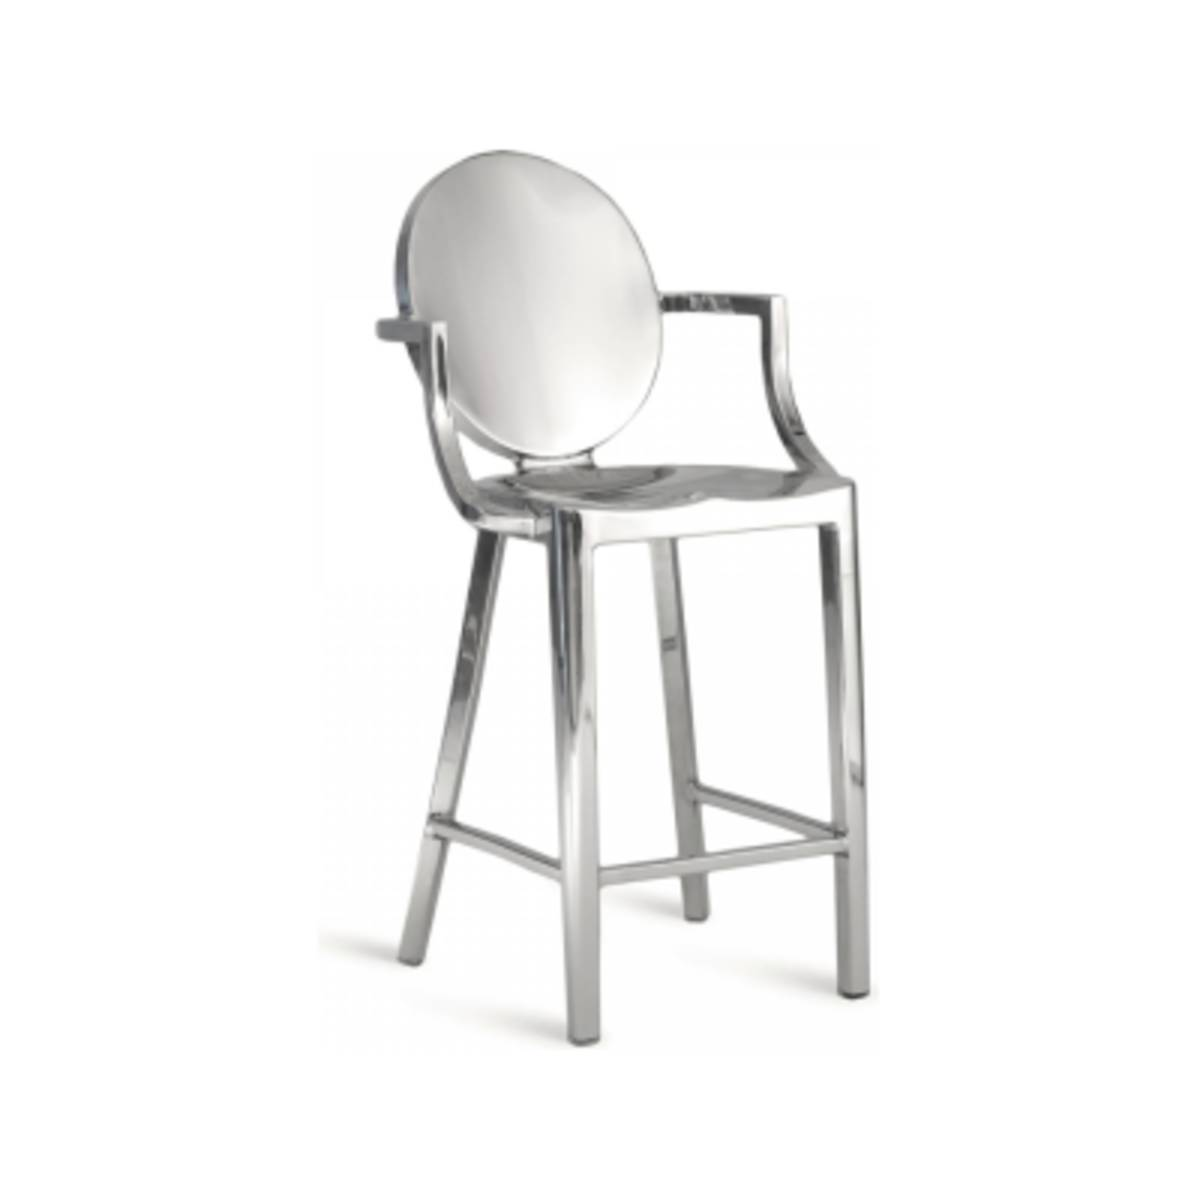 Superb Kong Counter Stool With Arms Stools By Emeco Unemploymentrelief Wooden Chair Designs For Living Room Unemploymentrelieforg